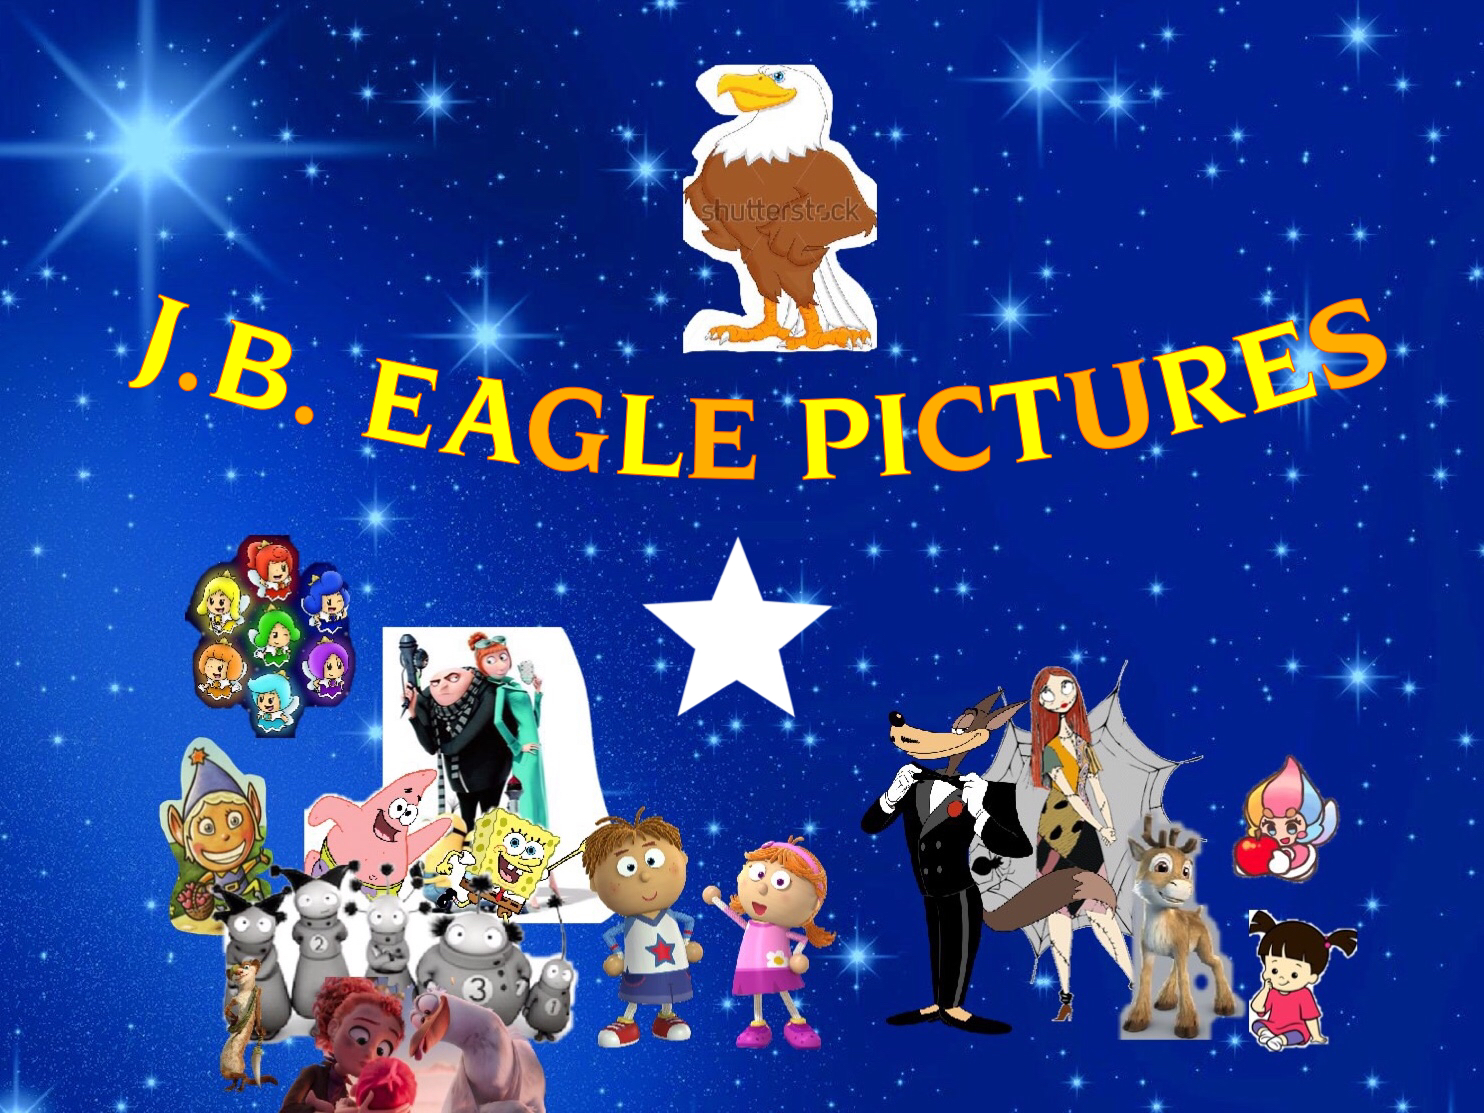 J.B. Eagle Pictures